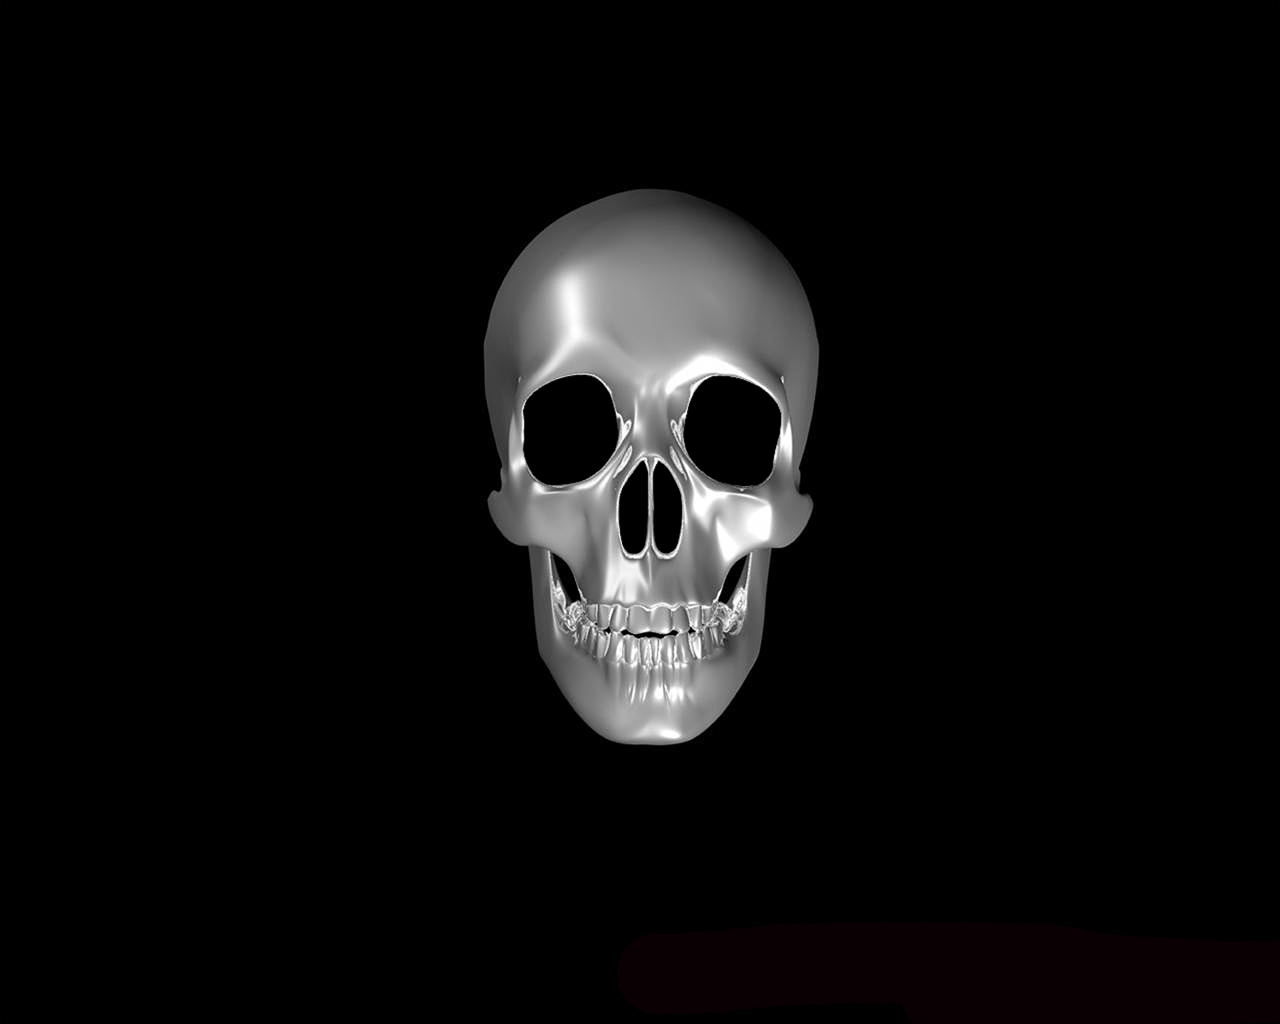 evil skull wallpapers screensaver - photo #49